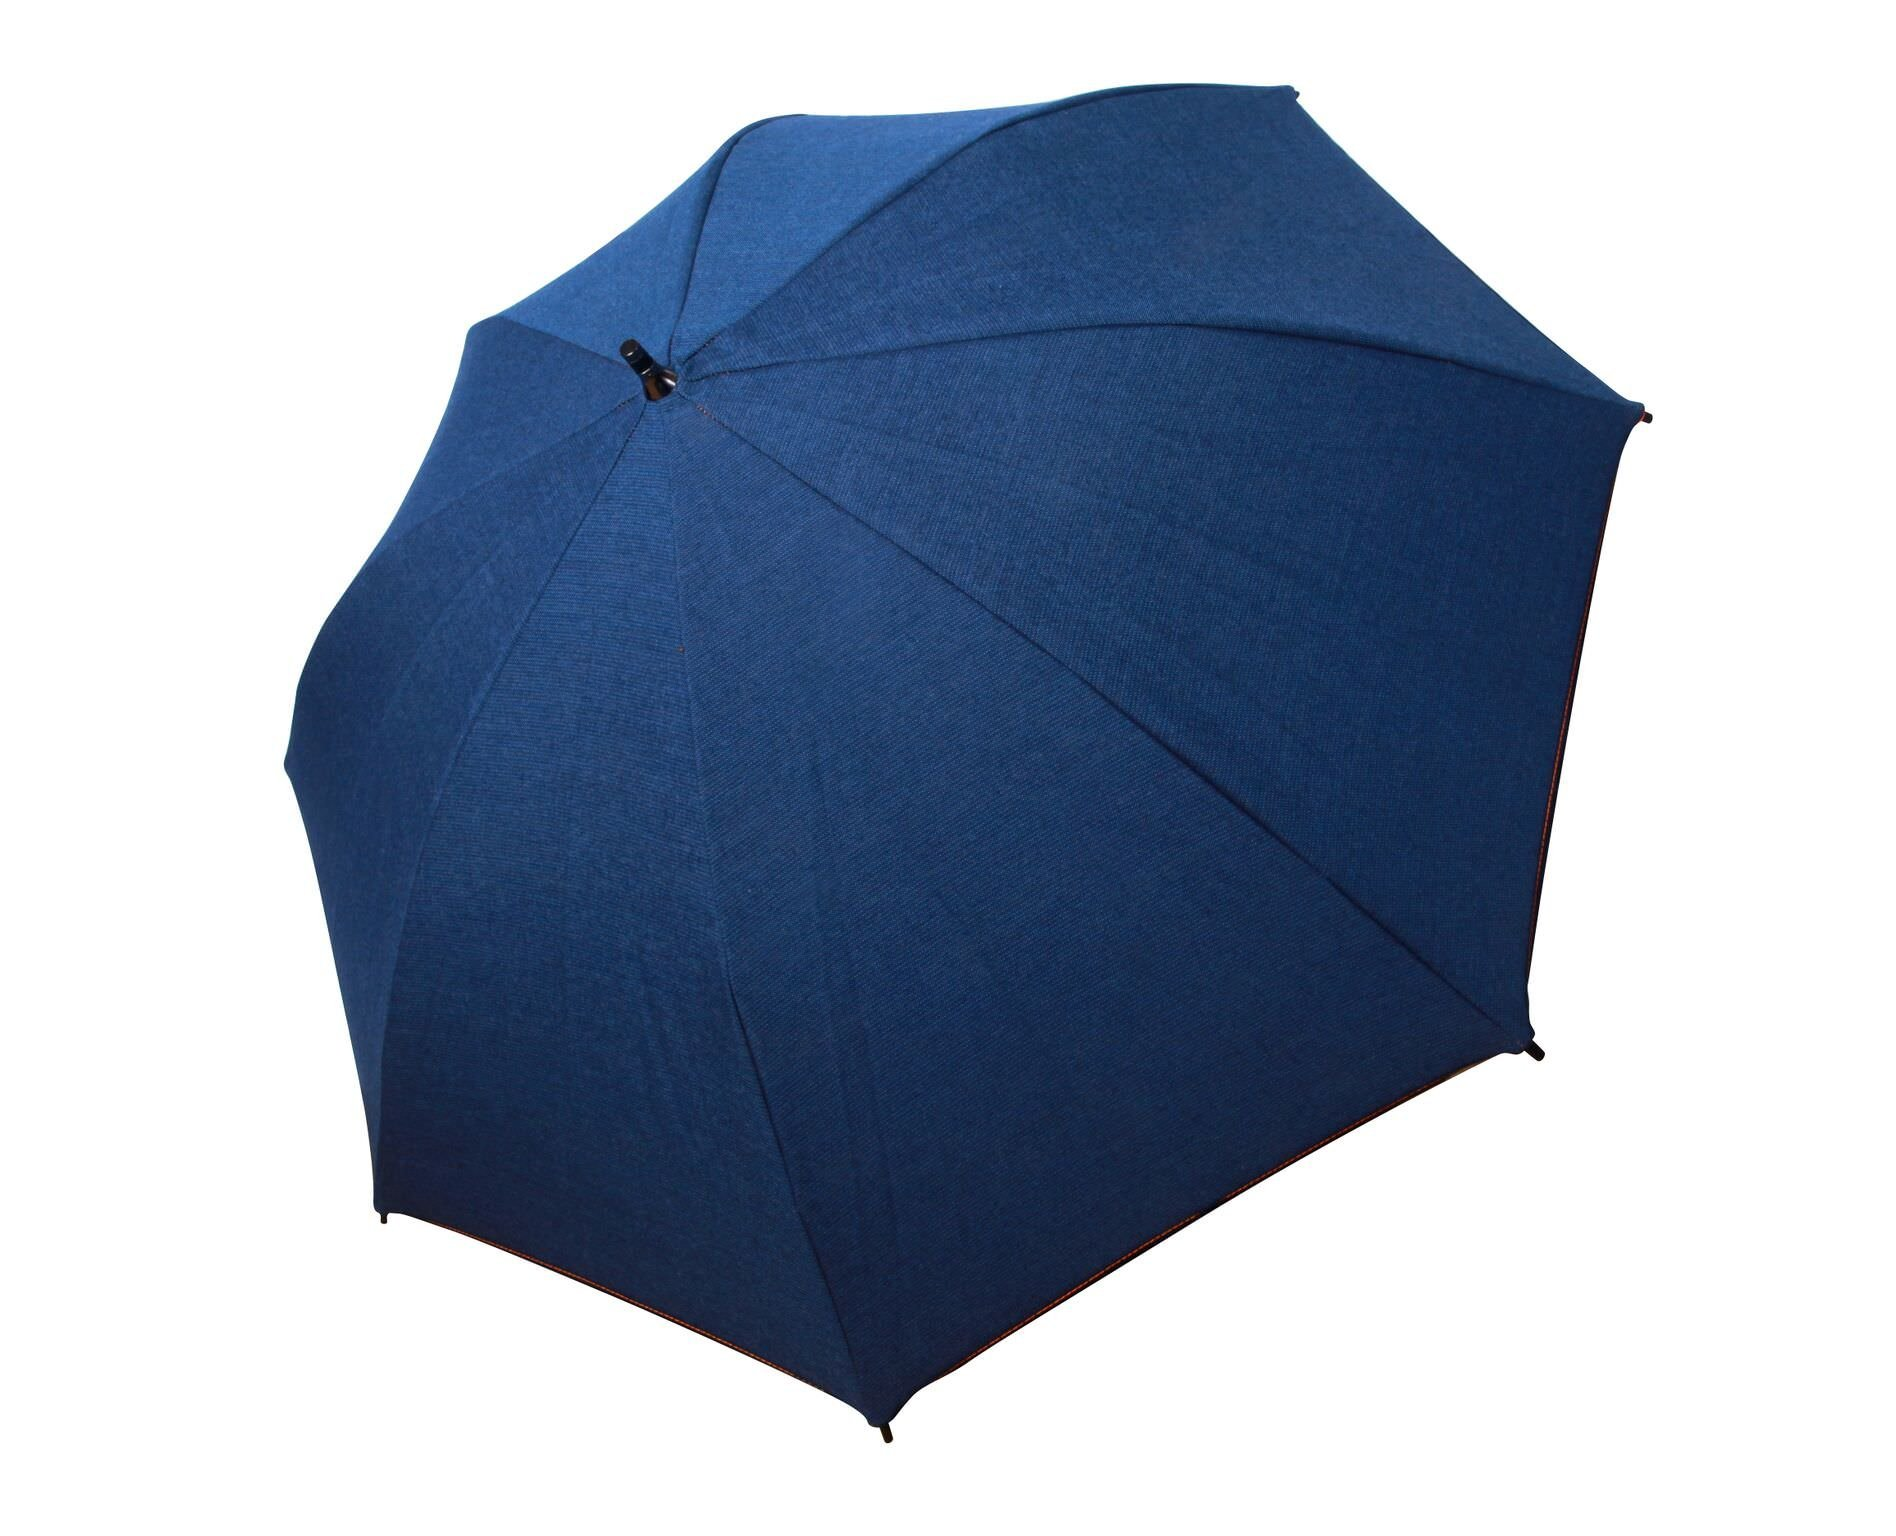 Large Sun & Rain Umbrella - Blue Jean Sunbrella Fabric - Dual Protection from Water and UVA and UVB Rays - By San Francisco Umbrella Co.